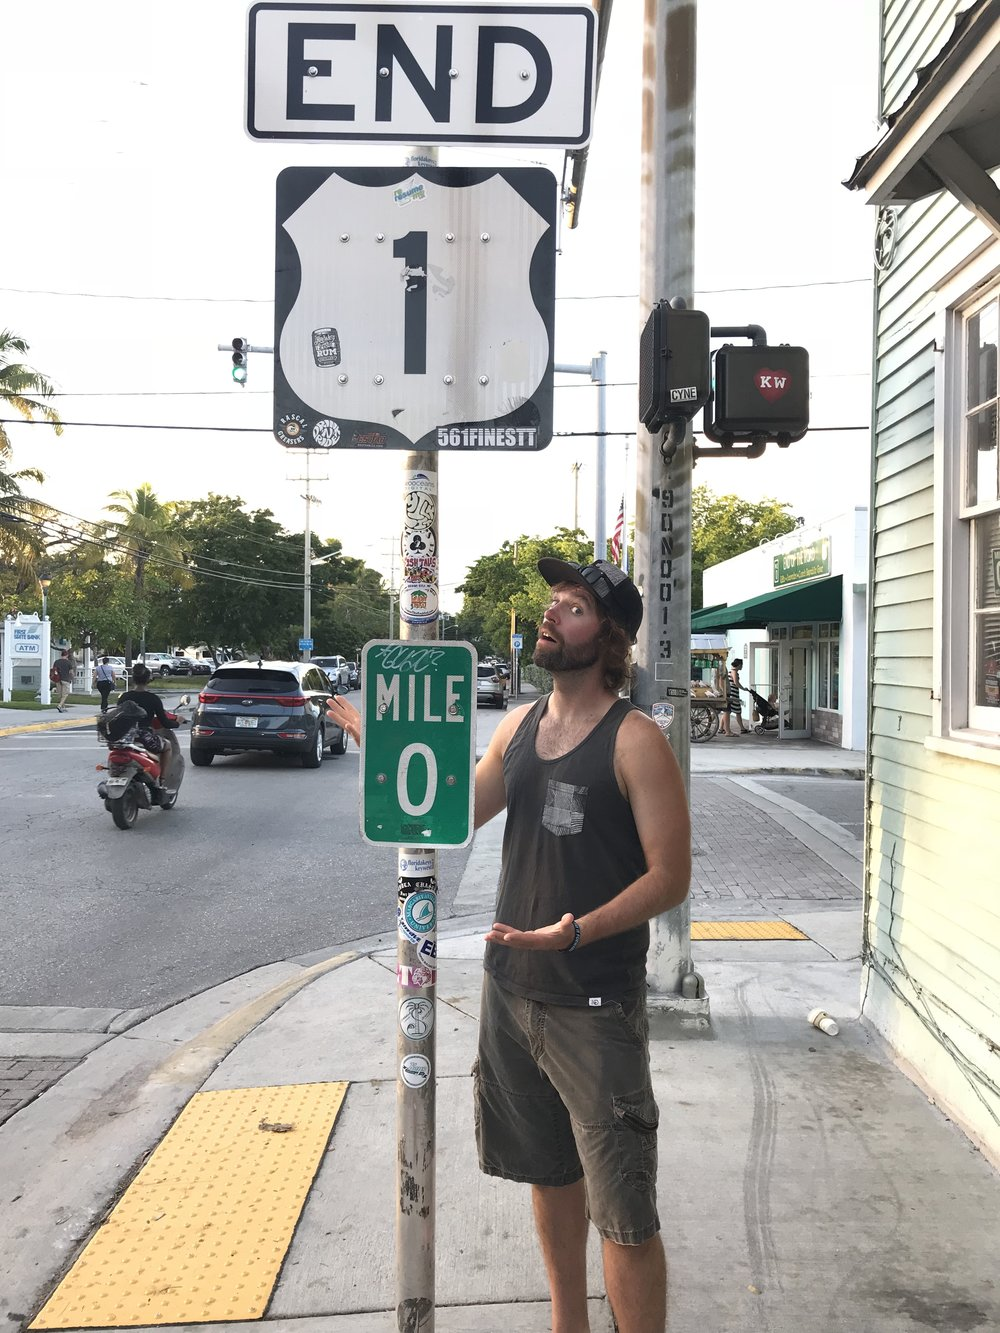 The end of Highway 1 in Key West. This road is 545 miles in length and stops at this intersection.